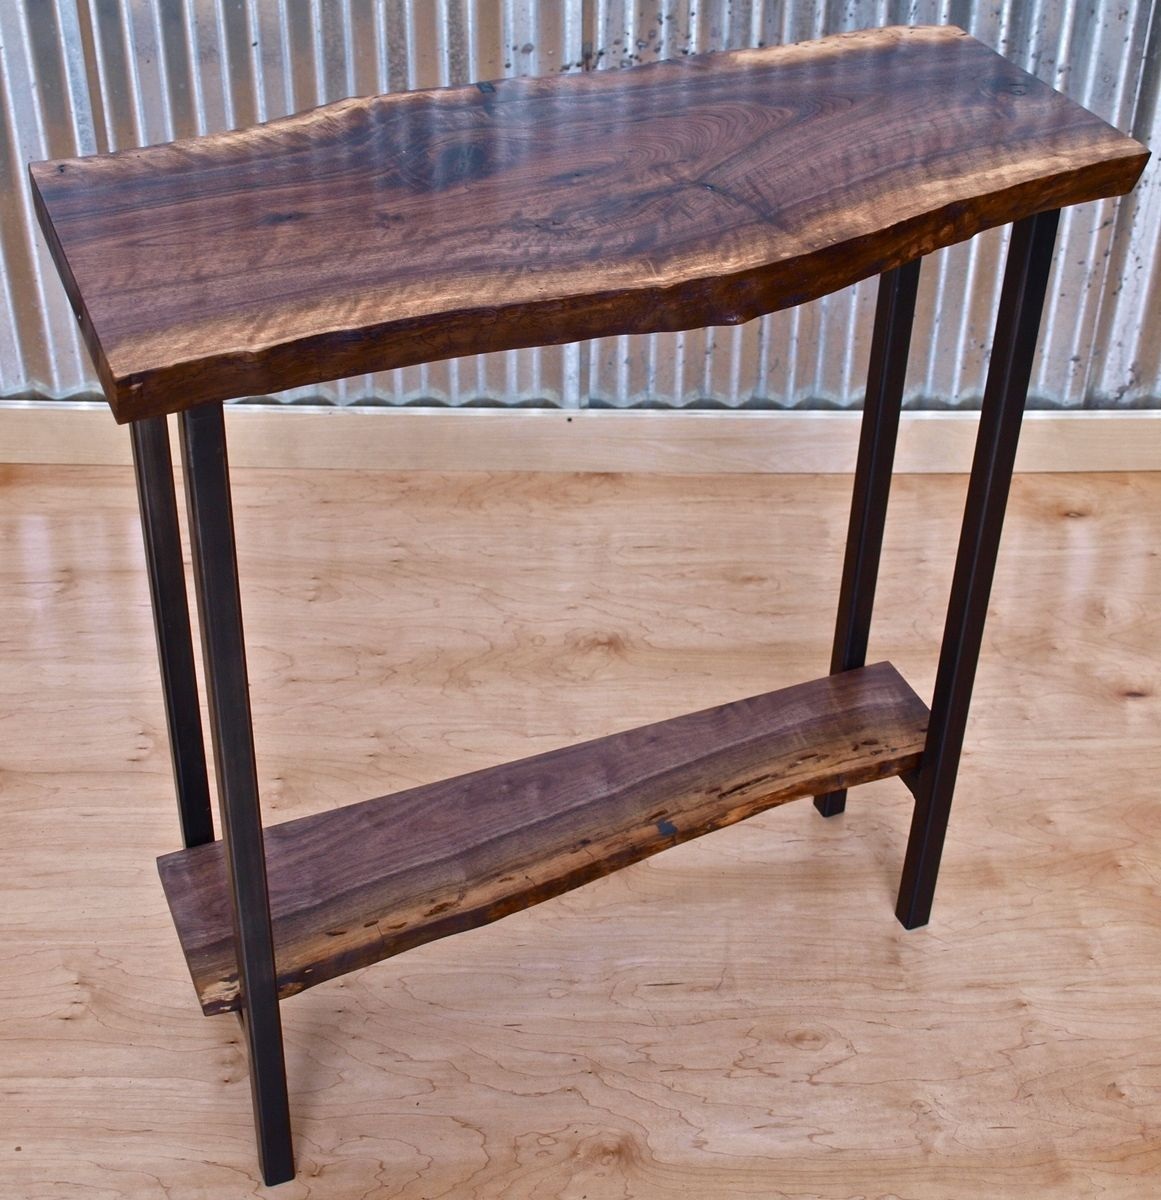 Unique Sofa Tables: Handmade Walnut Console Table By WITNESS TREE STUDIOS